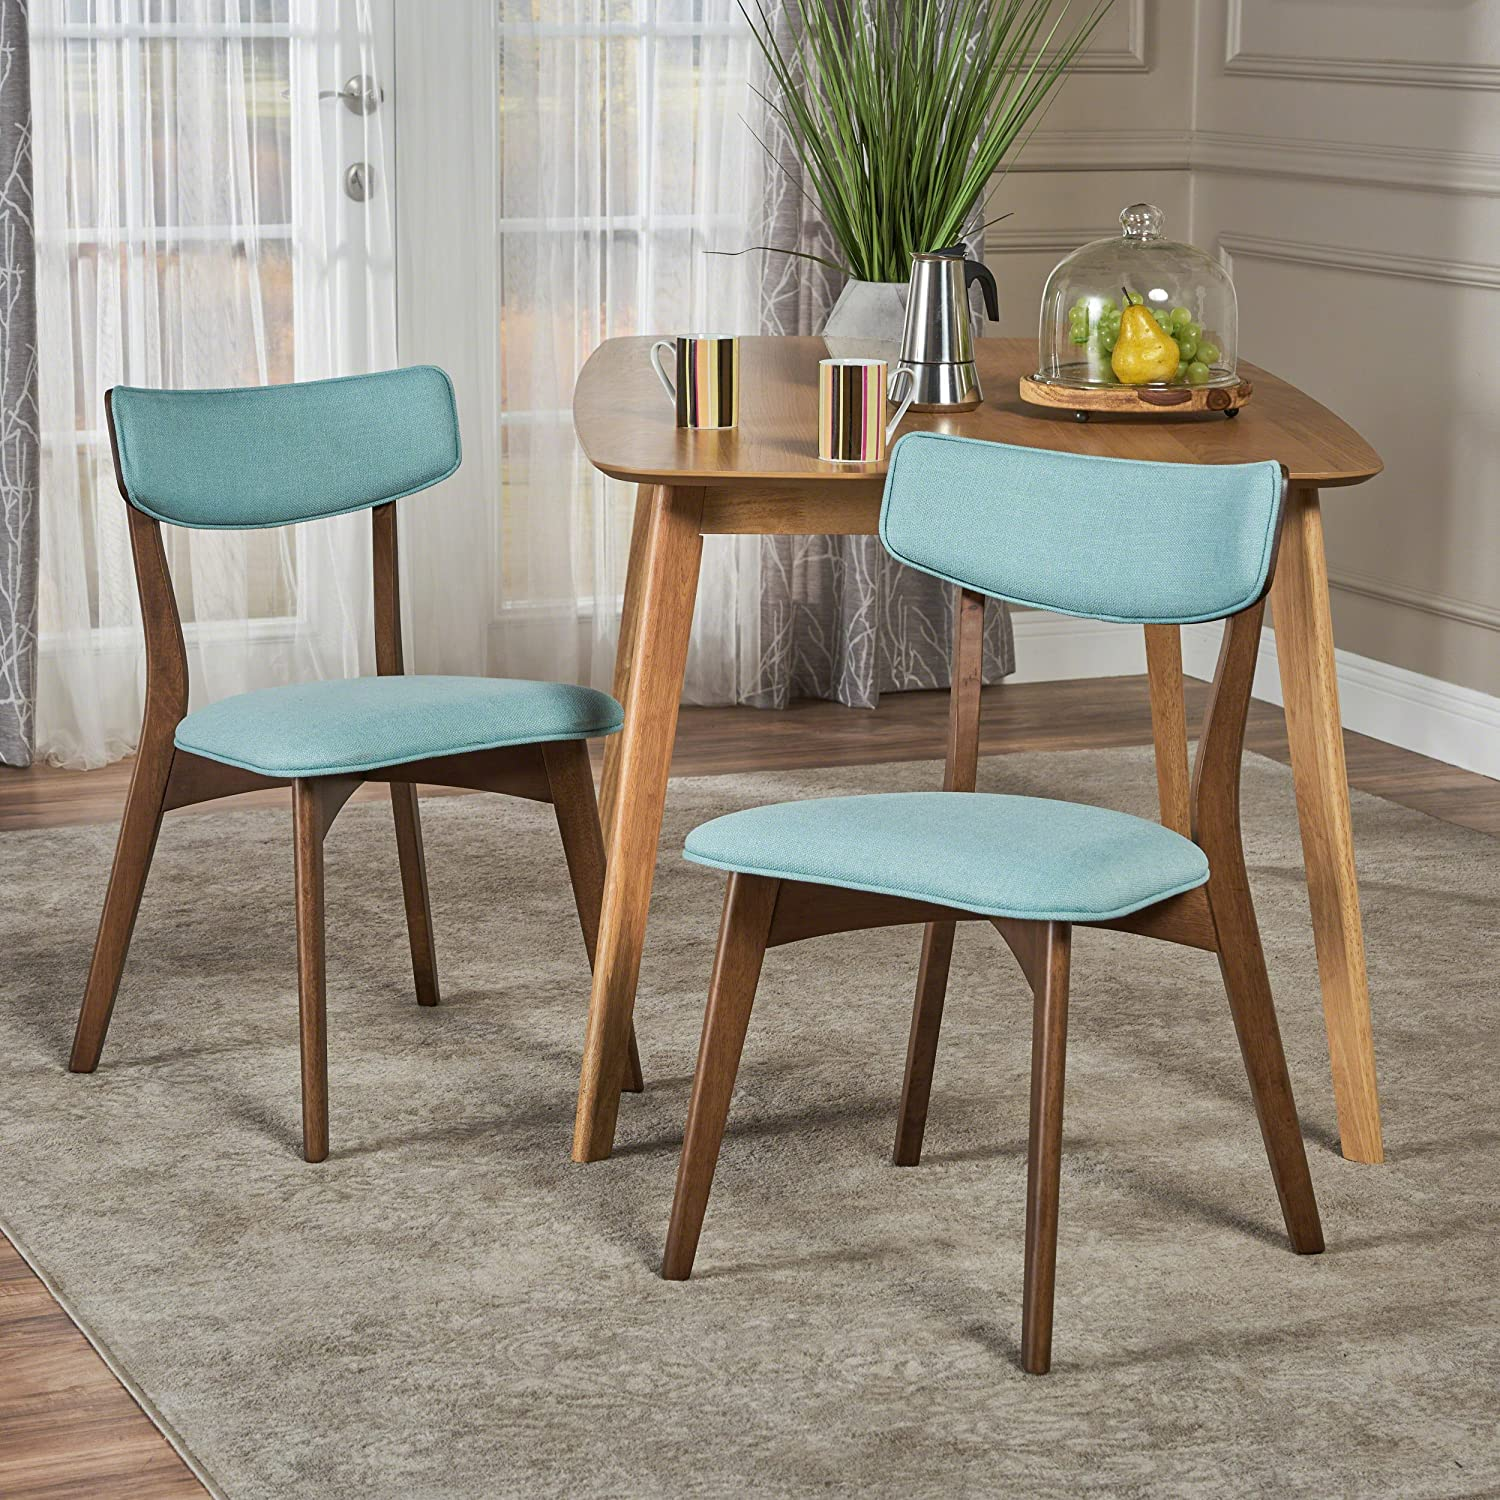 Amazon com molly mid century modern mint fabric dining chairs with natural walnut finished rubberwood frame set of 2 chairs